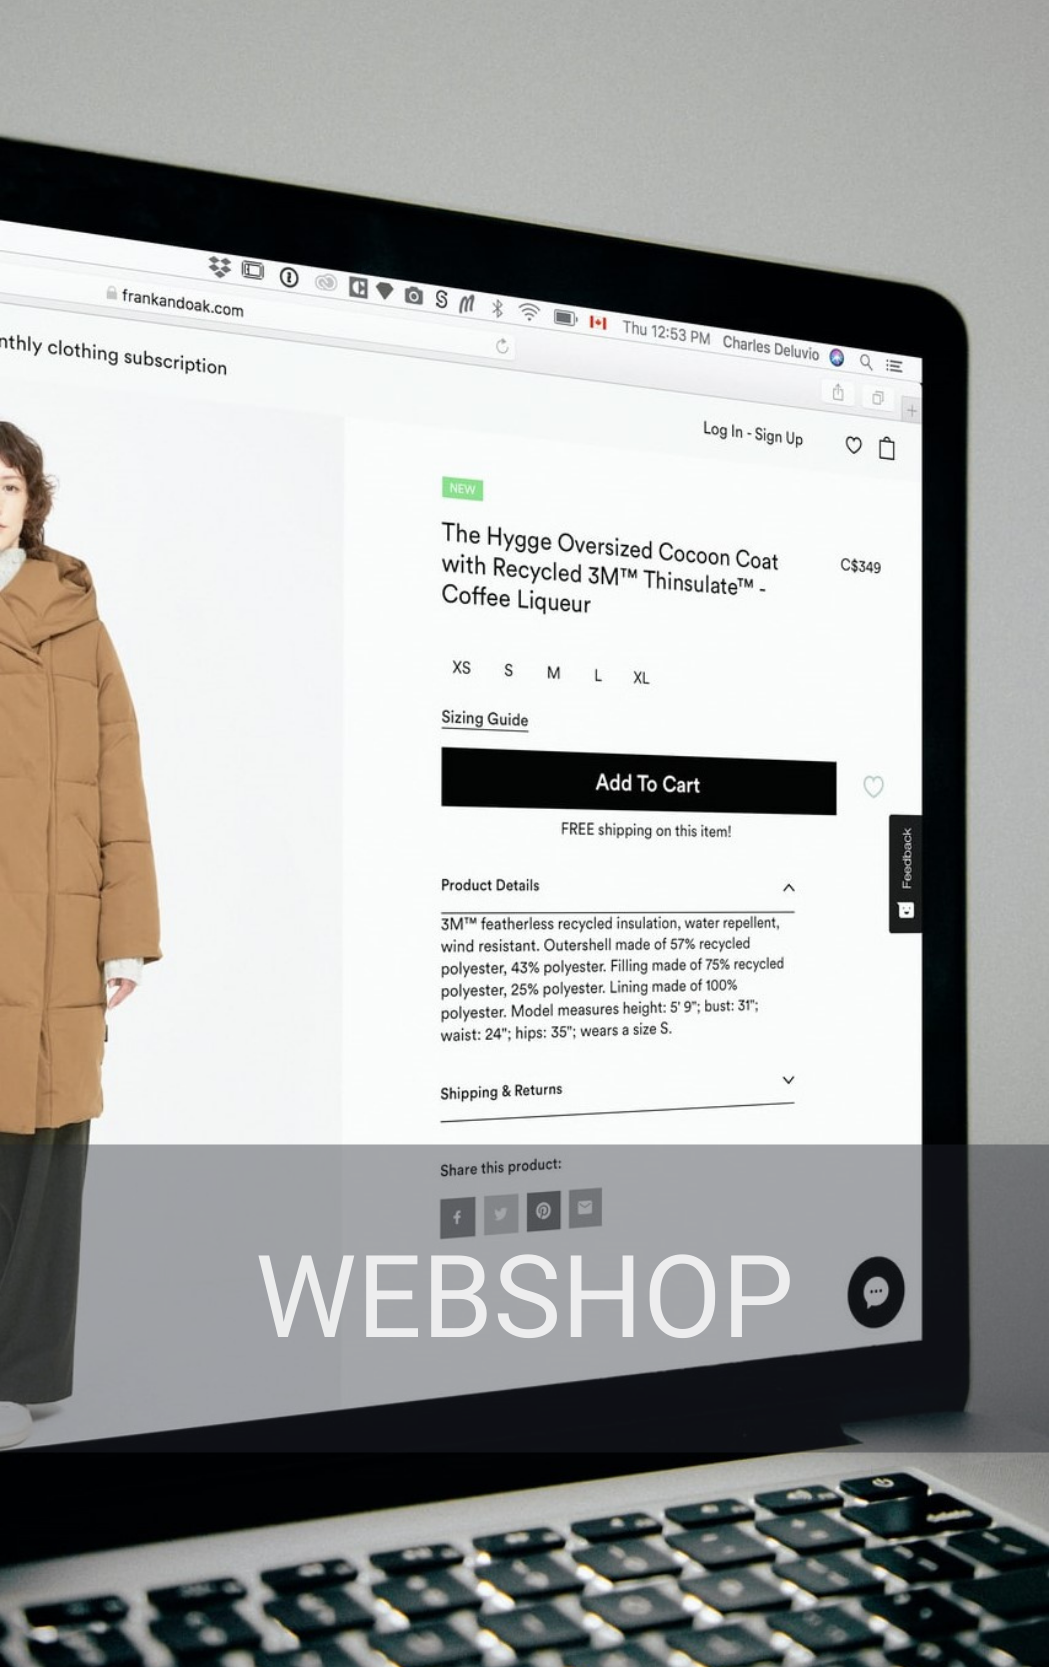 A Webshop in the late state of a purchase of a jacket. Macbook.